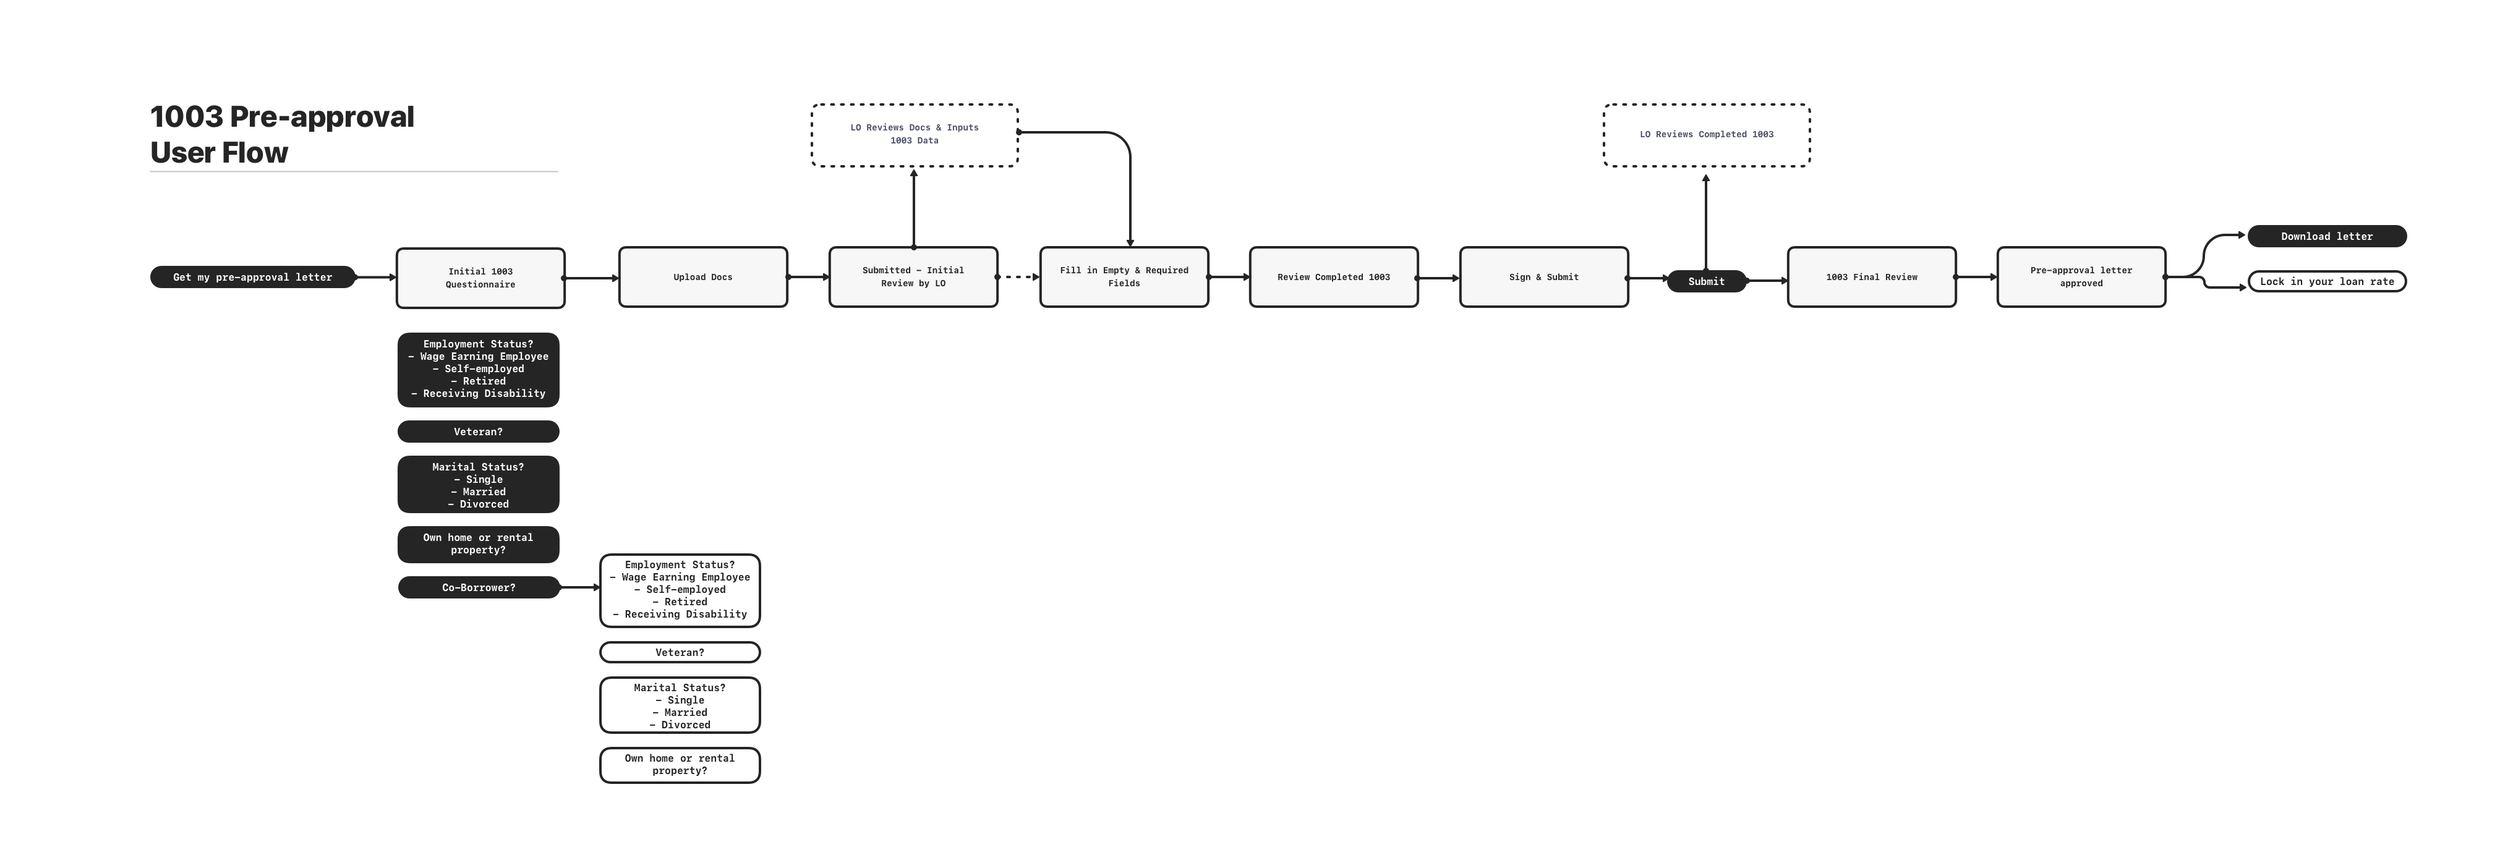 1003 Pre-approval  User Flow.png